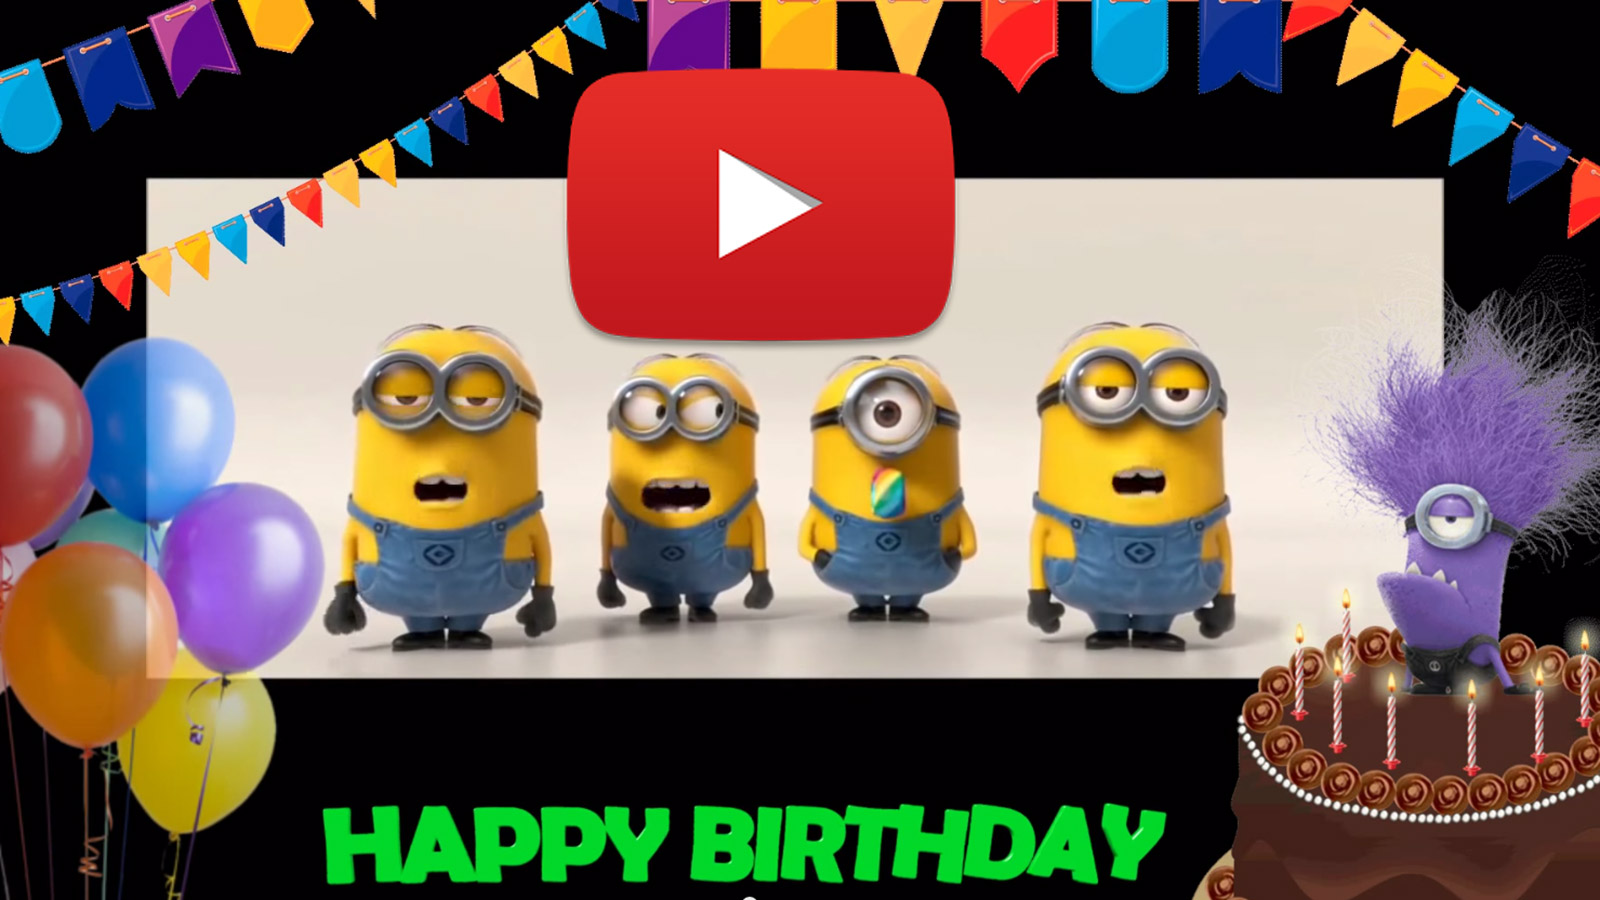 Happy Birthday to you! Happy birthday song minions.